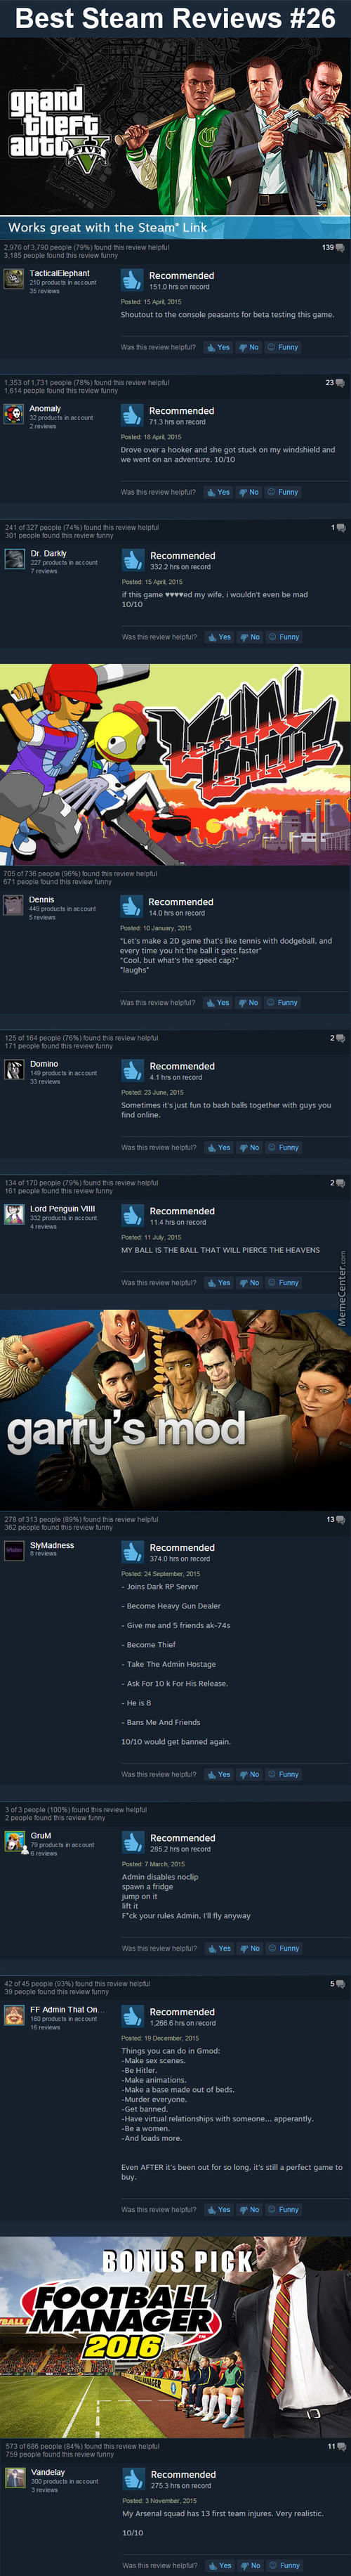 "Best Steam Reviews #26 - ""work, Work"""